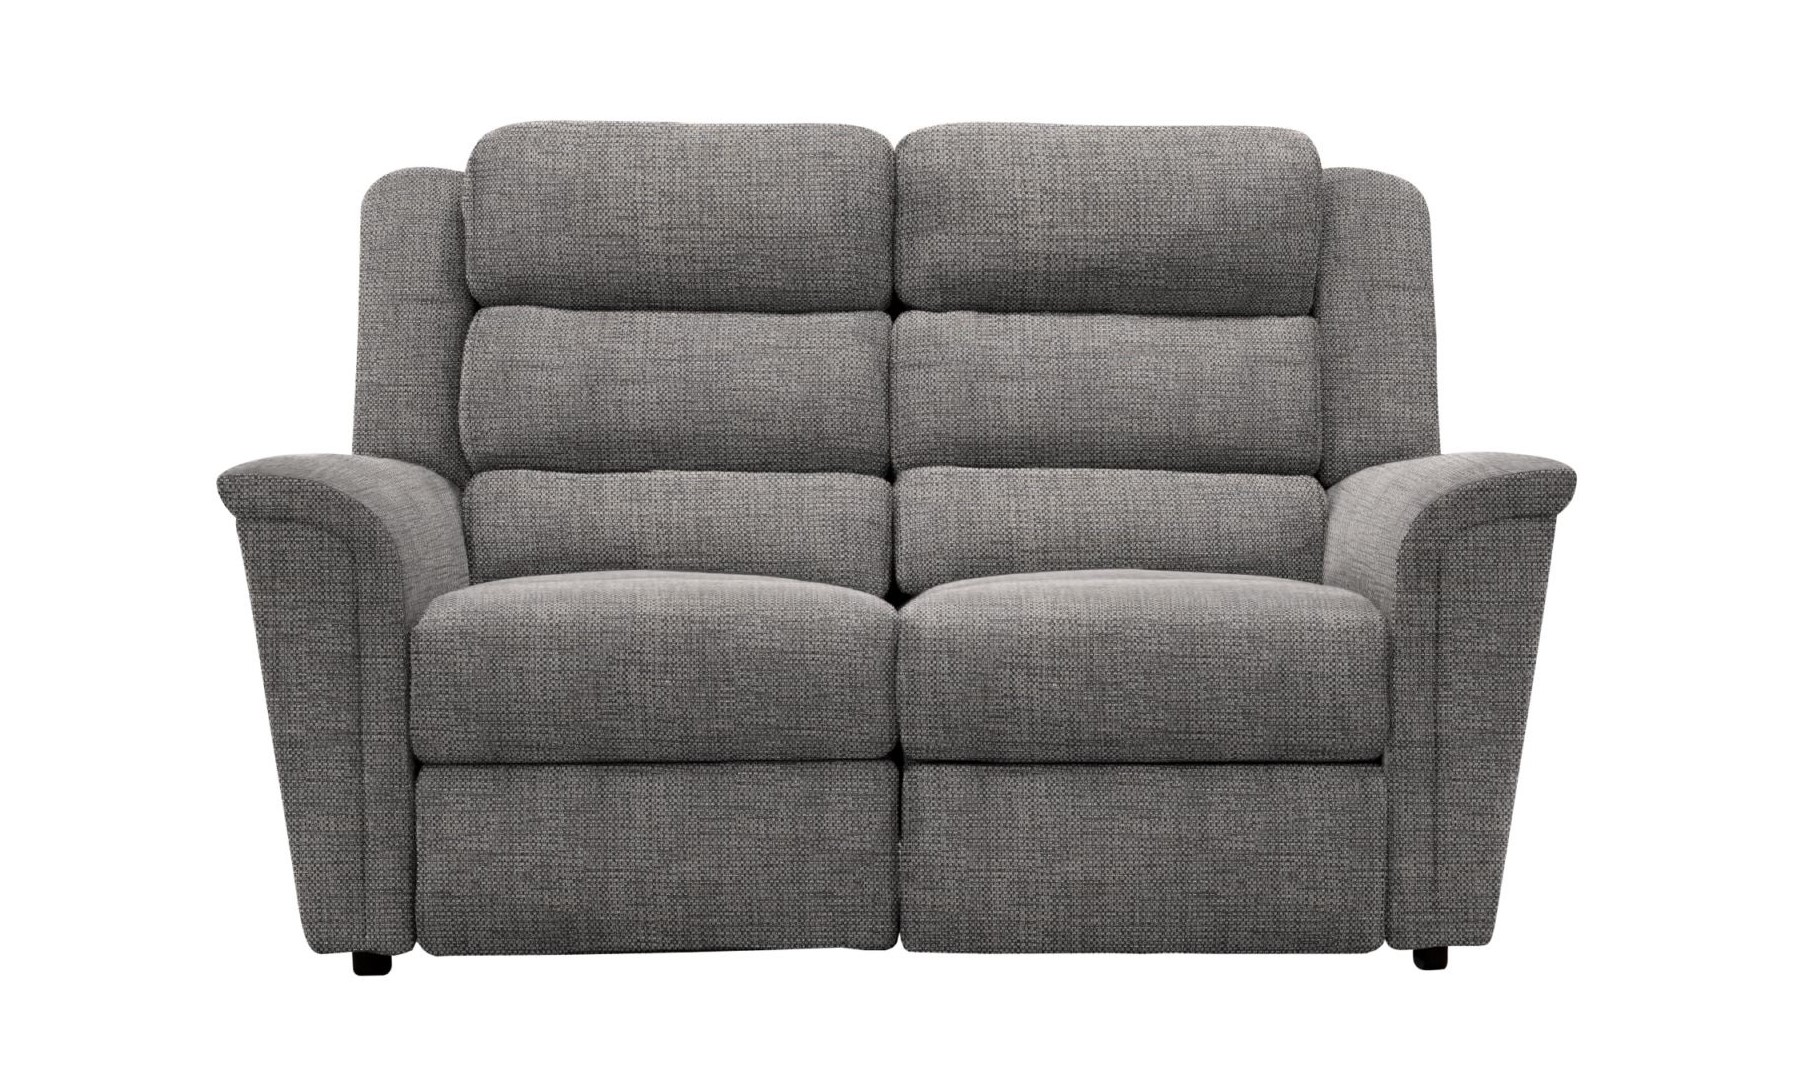 Parker Knoll Colorado Large 2 Seater